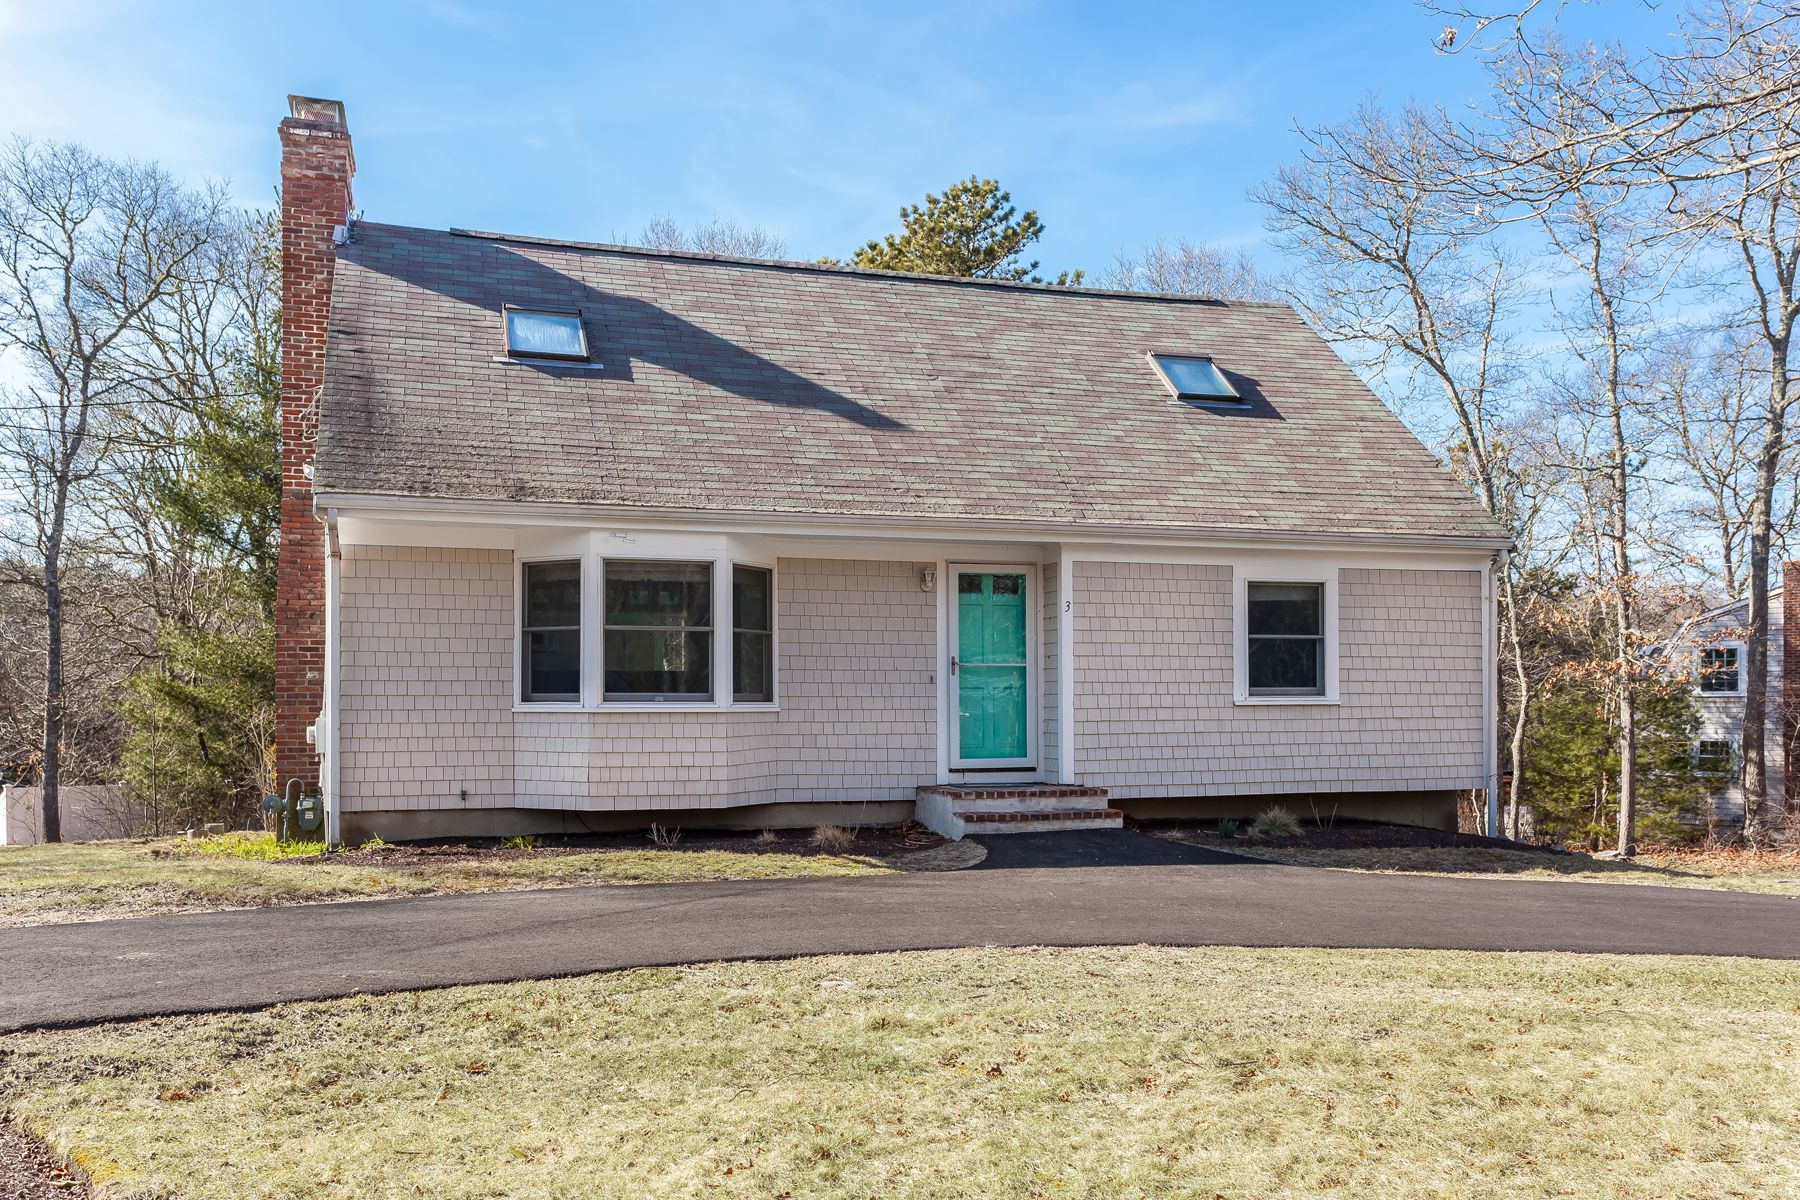 Single Family Home for Active at Appealing Cape With Access to Beaches 3 Bent Tree Drive Centerville, Massachusetts 02630 United States